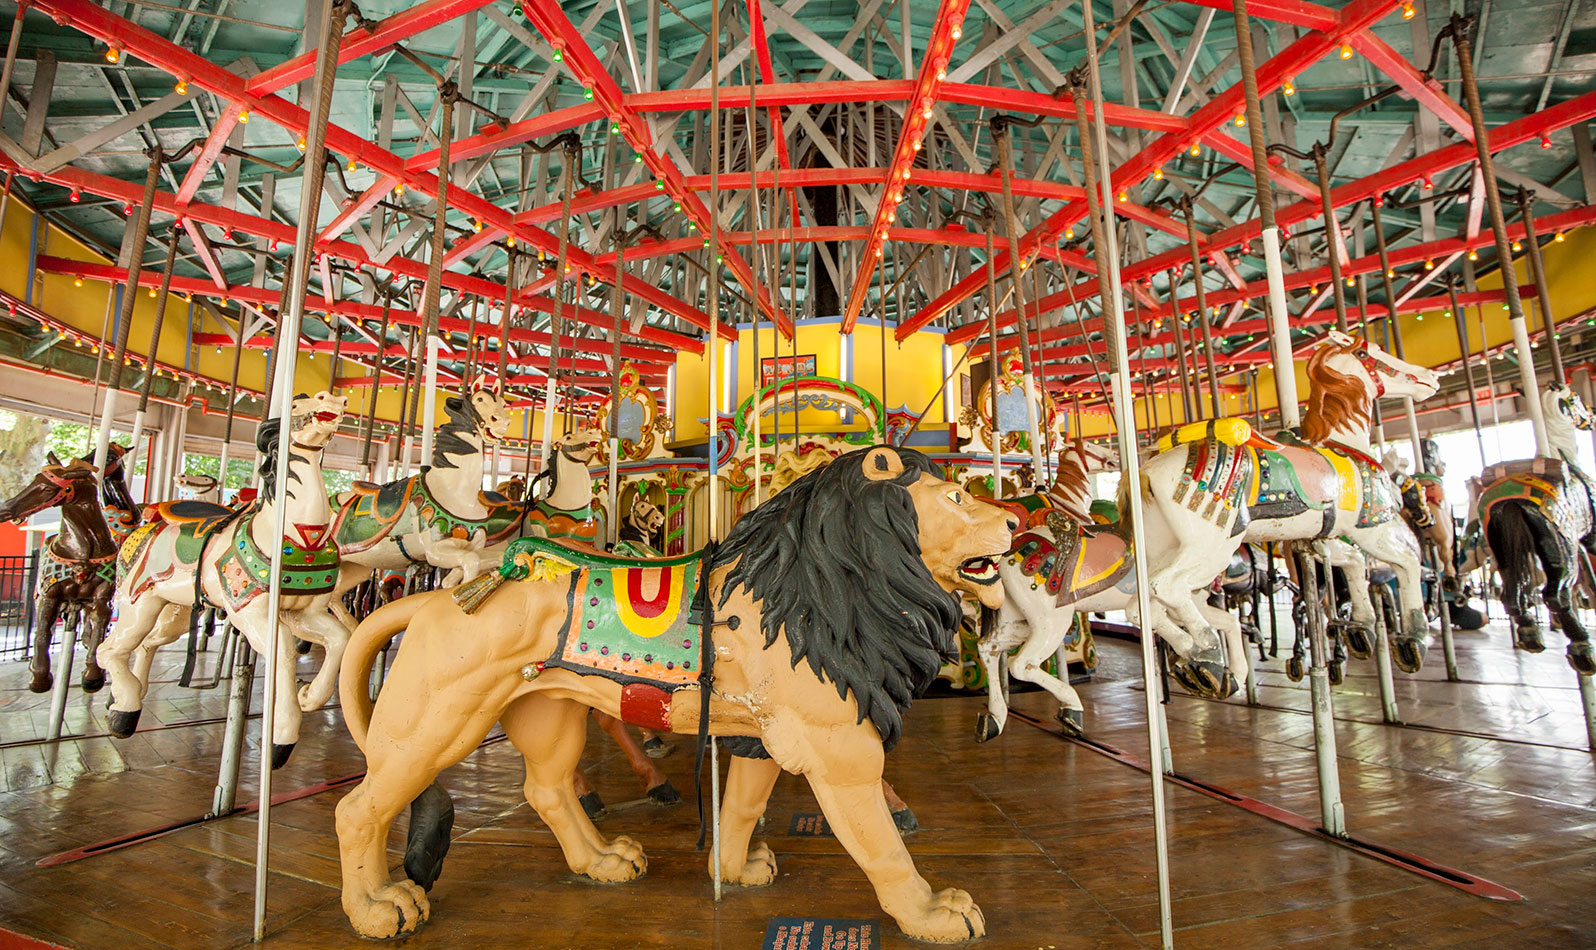 Be sure to take a ride on this historic carousel from the 1964-65 World's Fair. Adults ride free, so hop on with the kids!